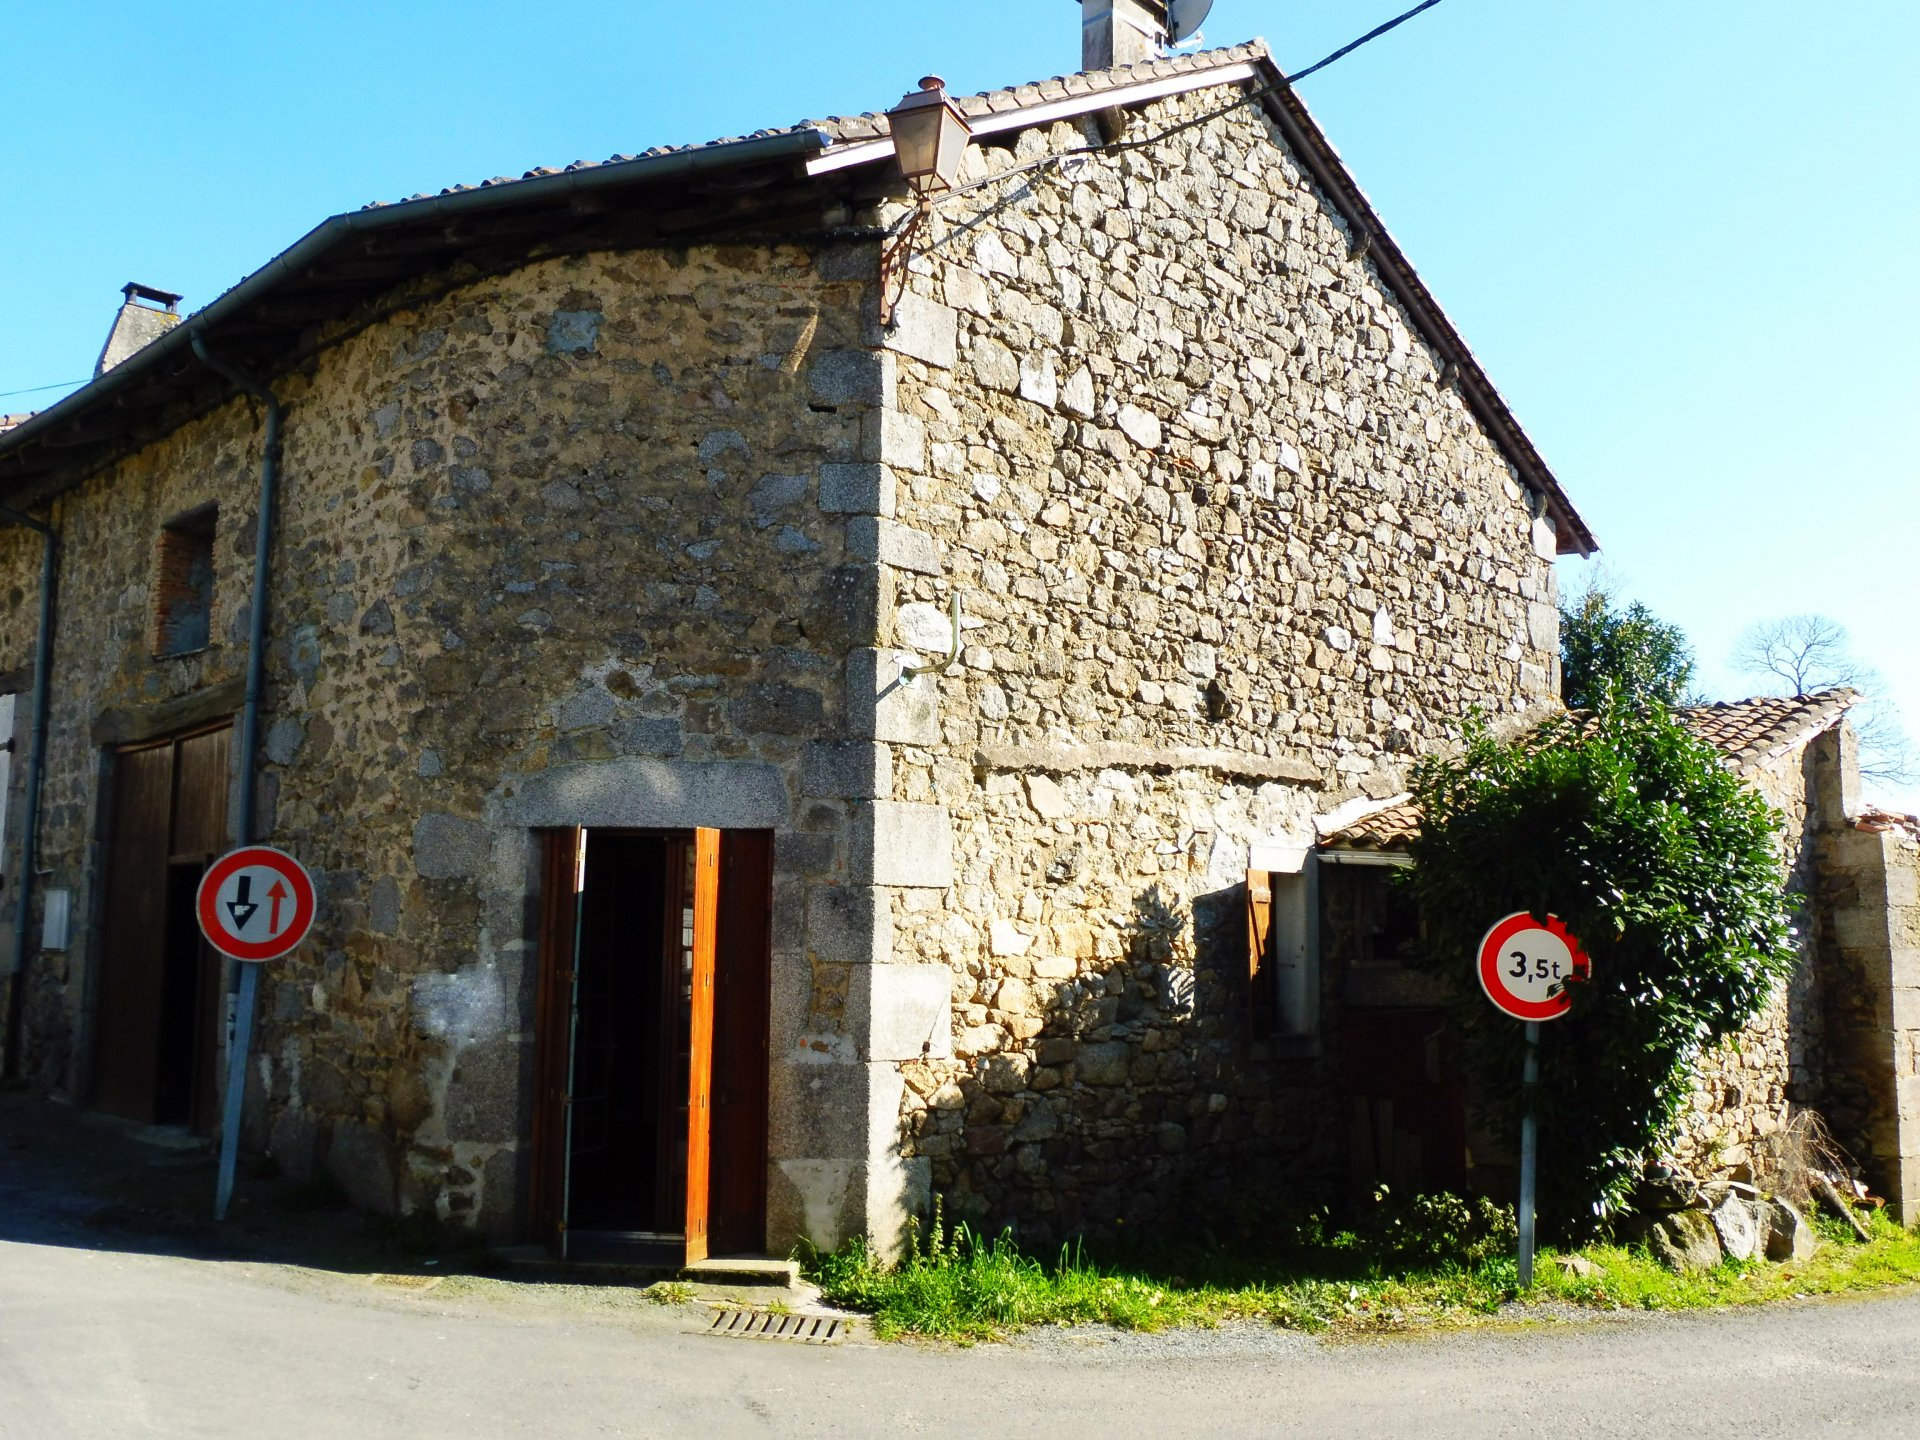 Affordable stone property in village centre with popular weekly market in Dordogne